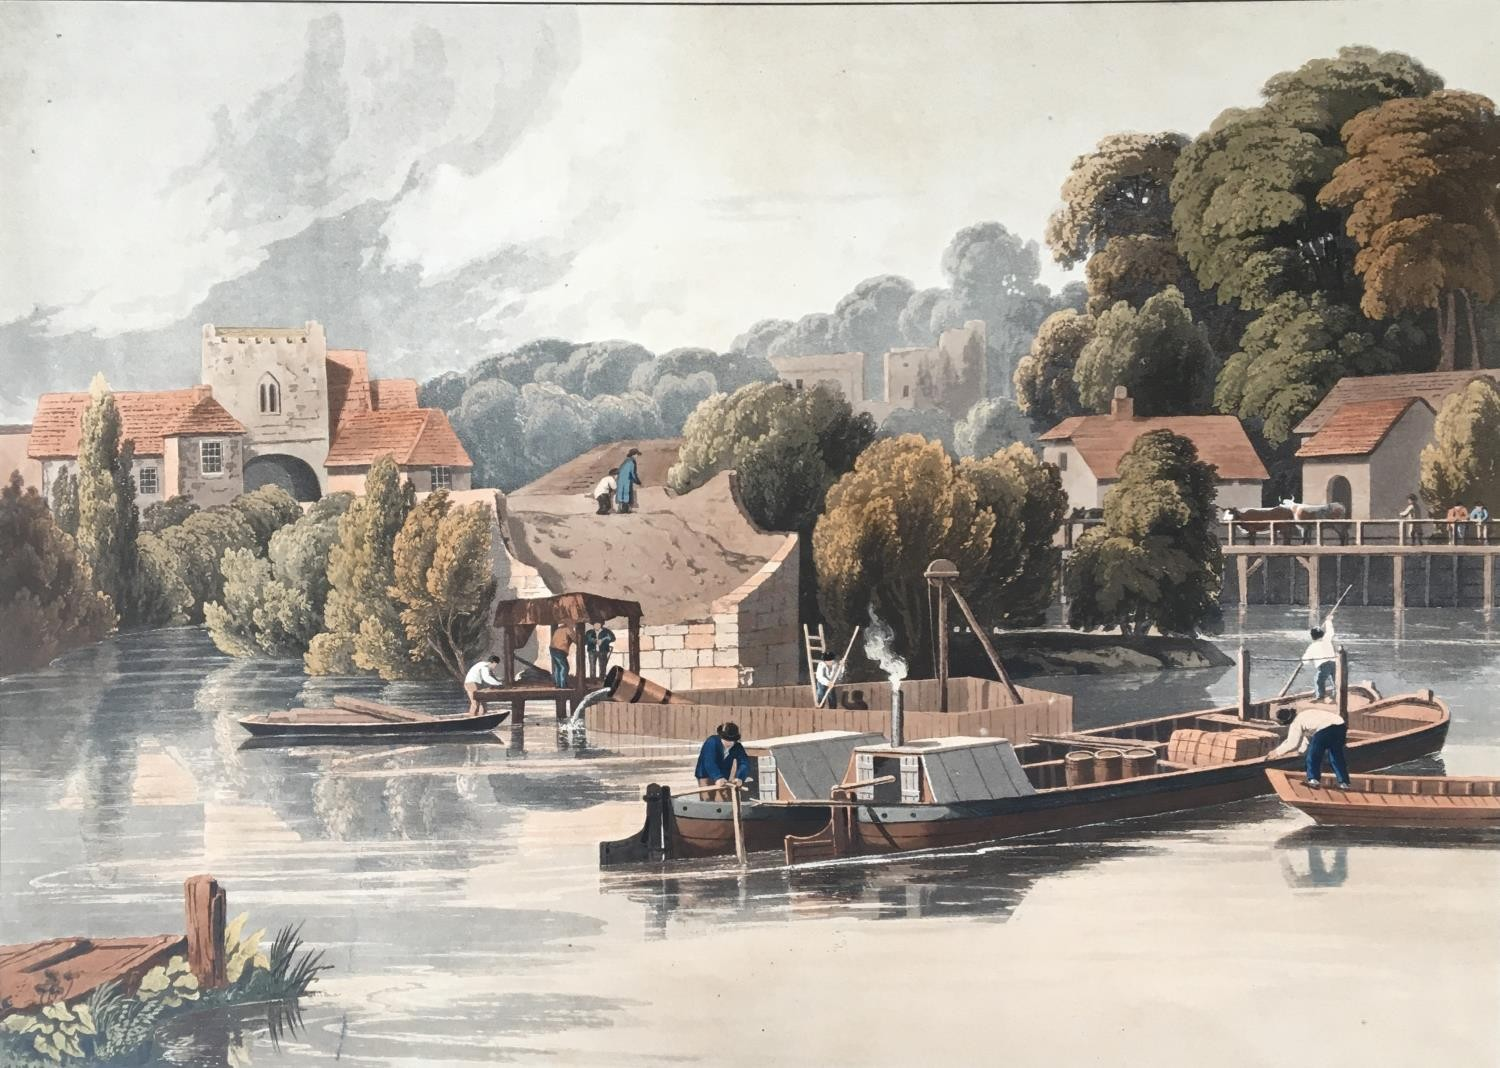 A collection of ten 19th century chromolithographs after William Havell, 'An Island On The Thames - Image 3 of 10